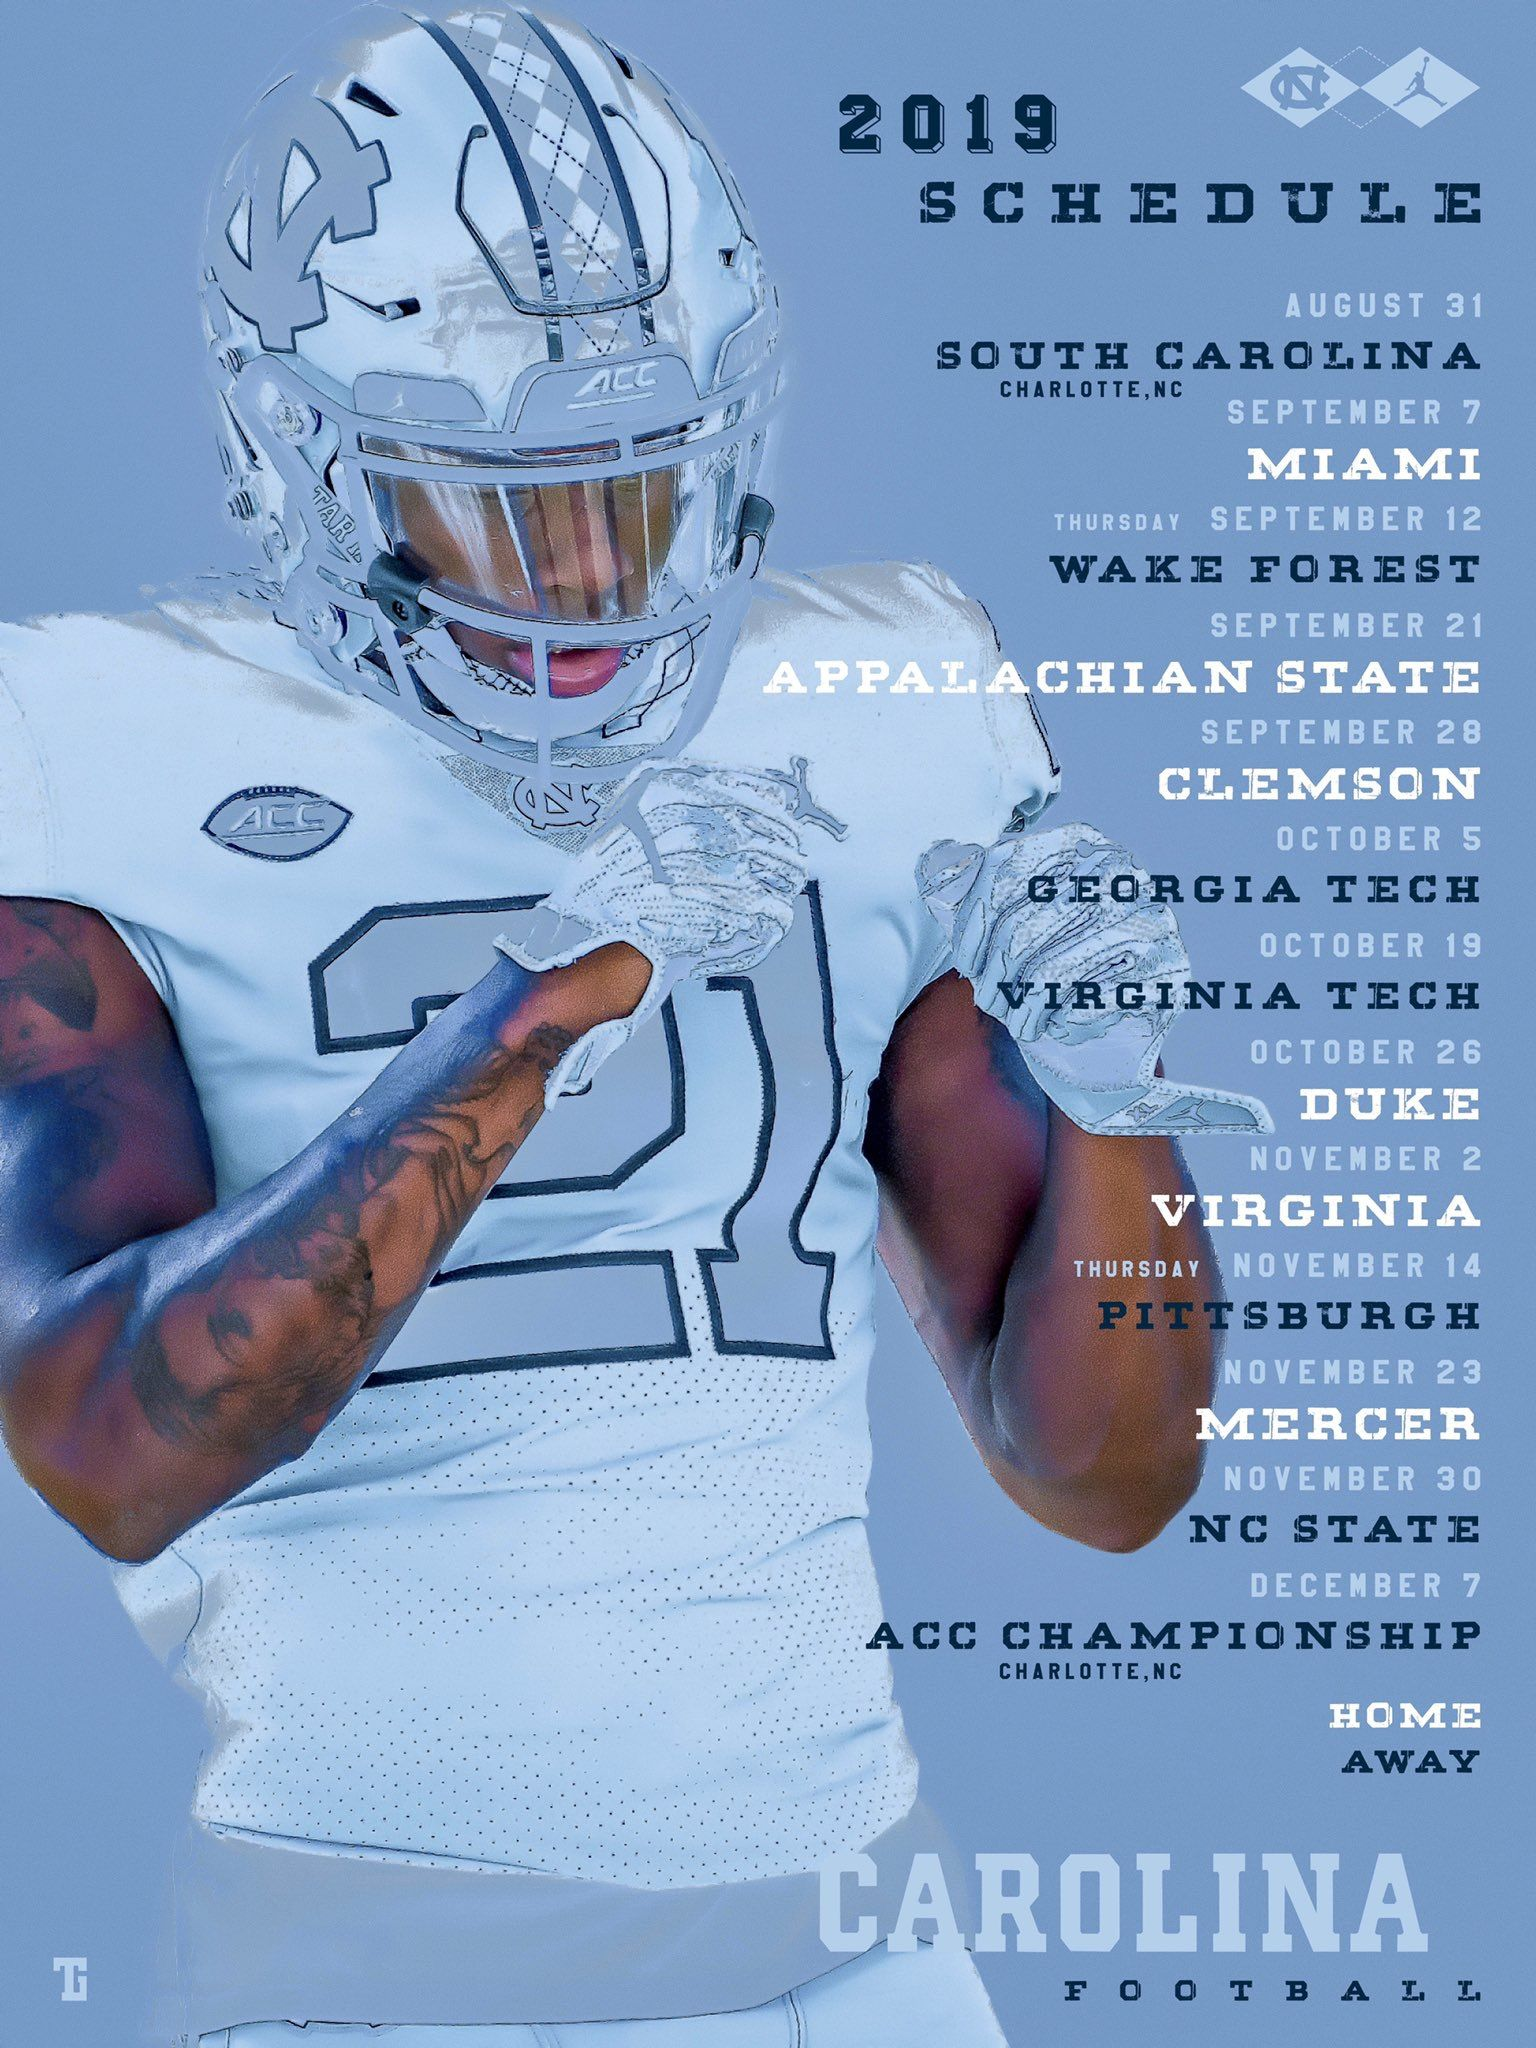 Pin by Bobby Gentry on UNC FOOTBALL Nc state, Virginia